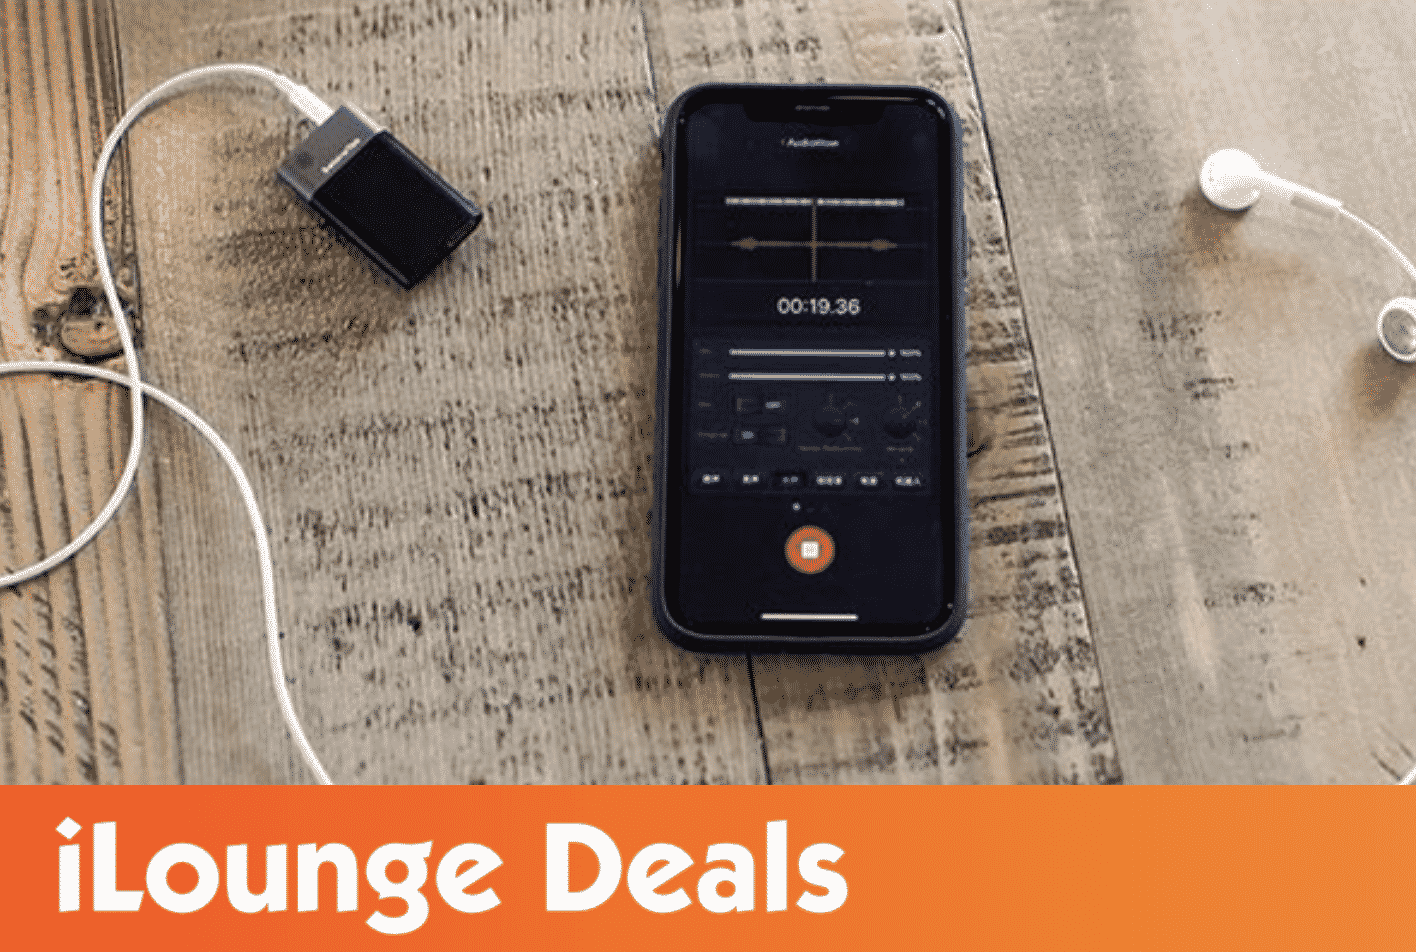 Wireless Audio Studio In A Matchbox Size For Mobile Phone is 39% Off